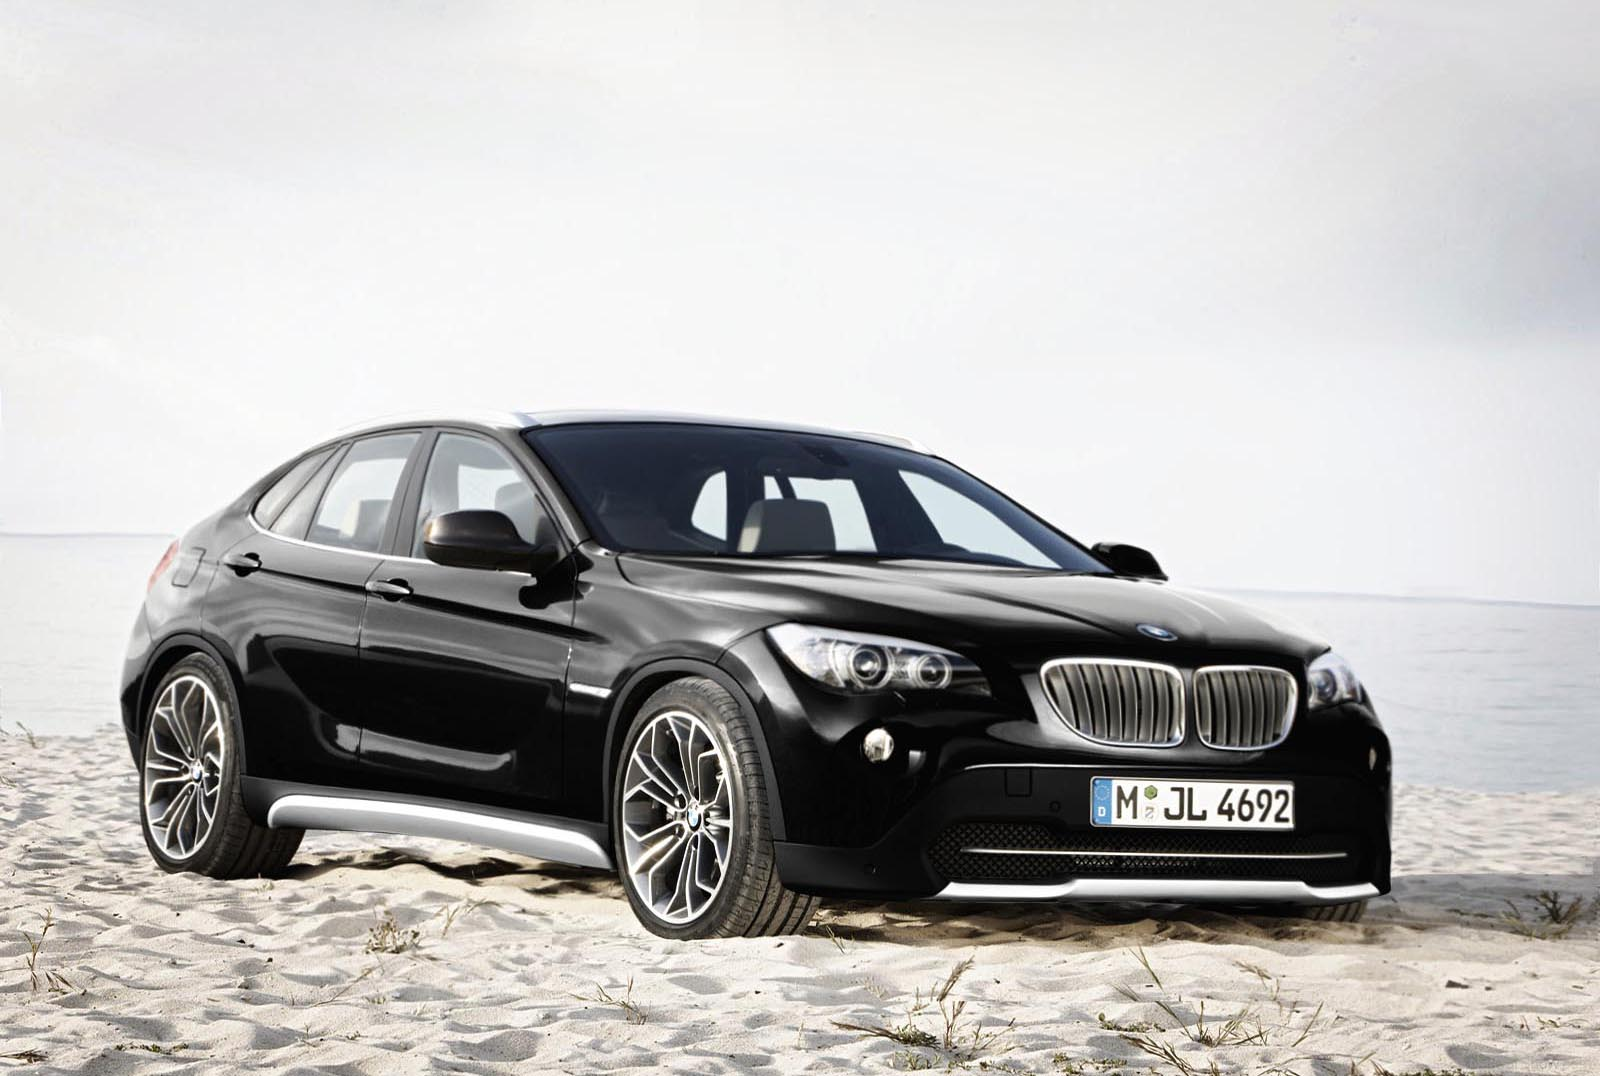 2014 BMW 3 Series GT Wallpaper For Phone